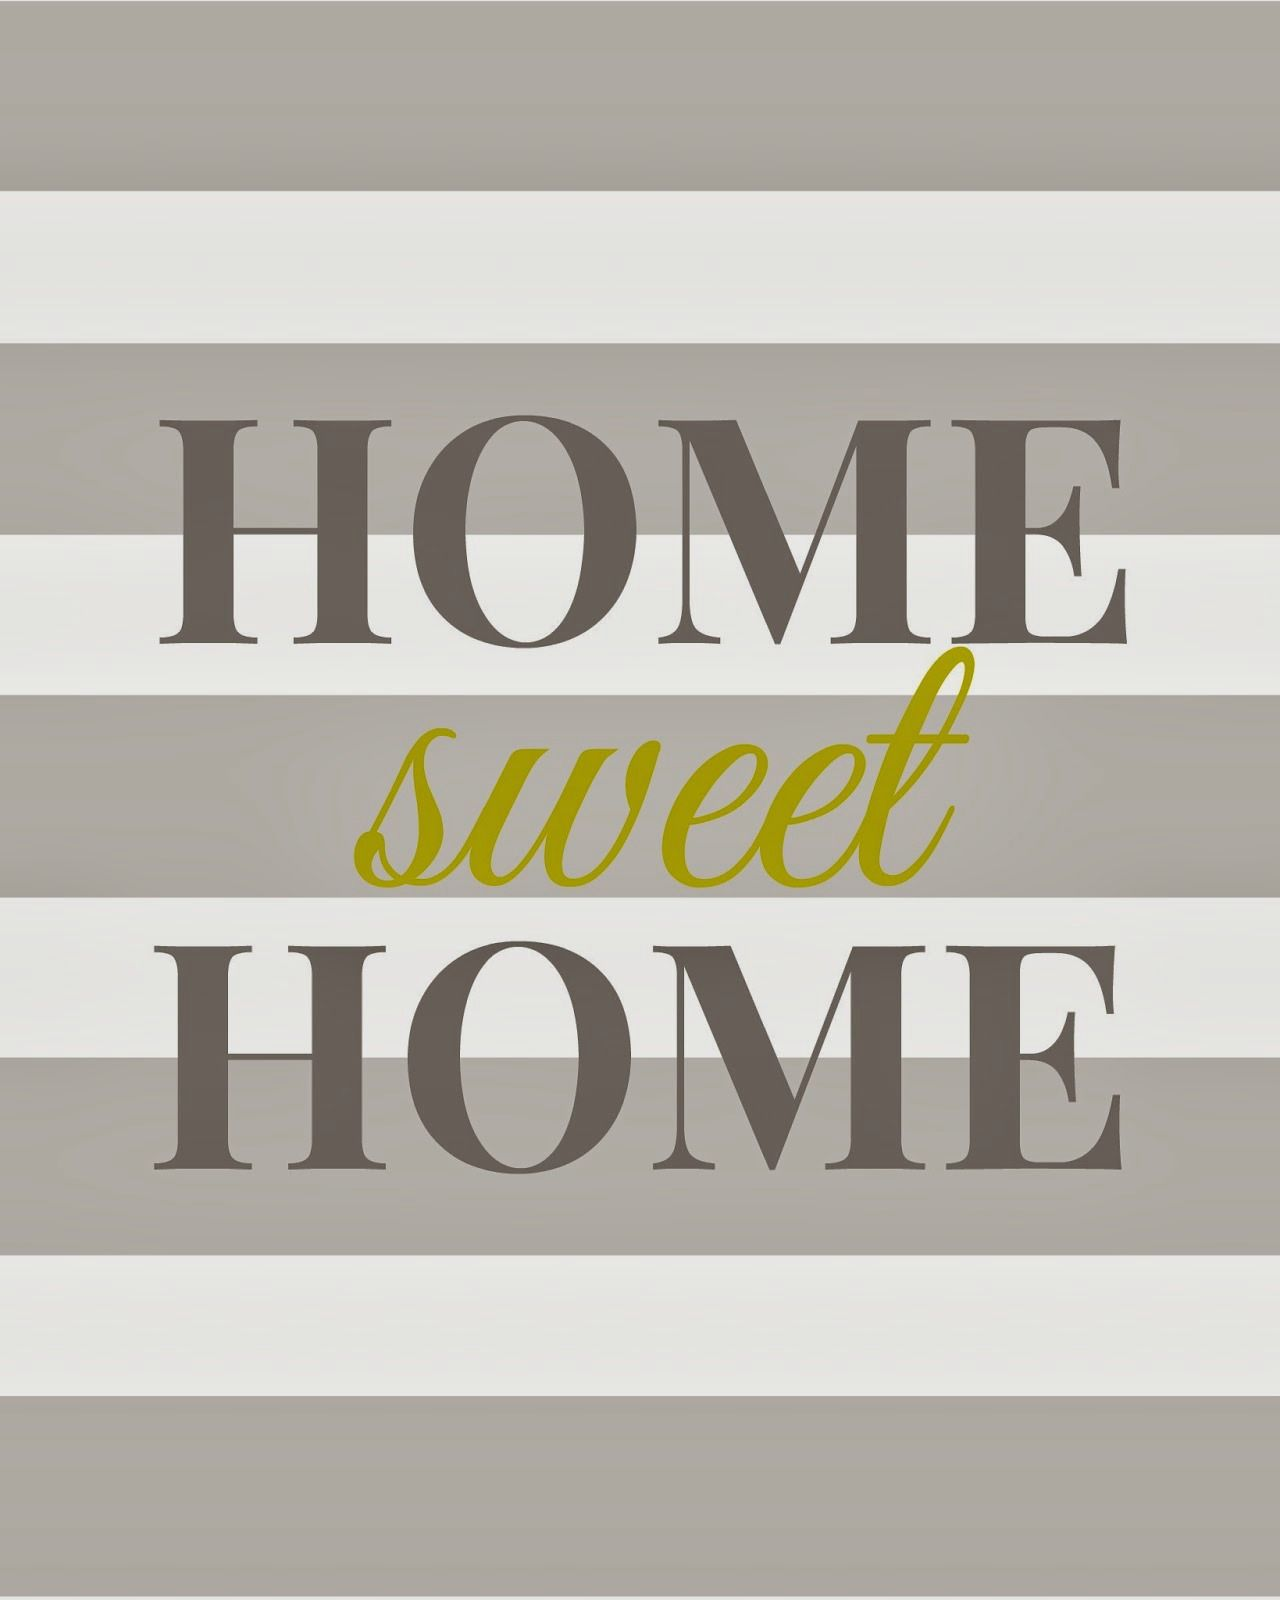 home sweet home free printable - Home Decor Photos Free